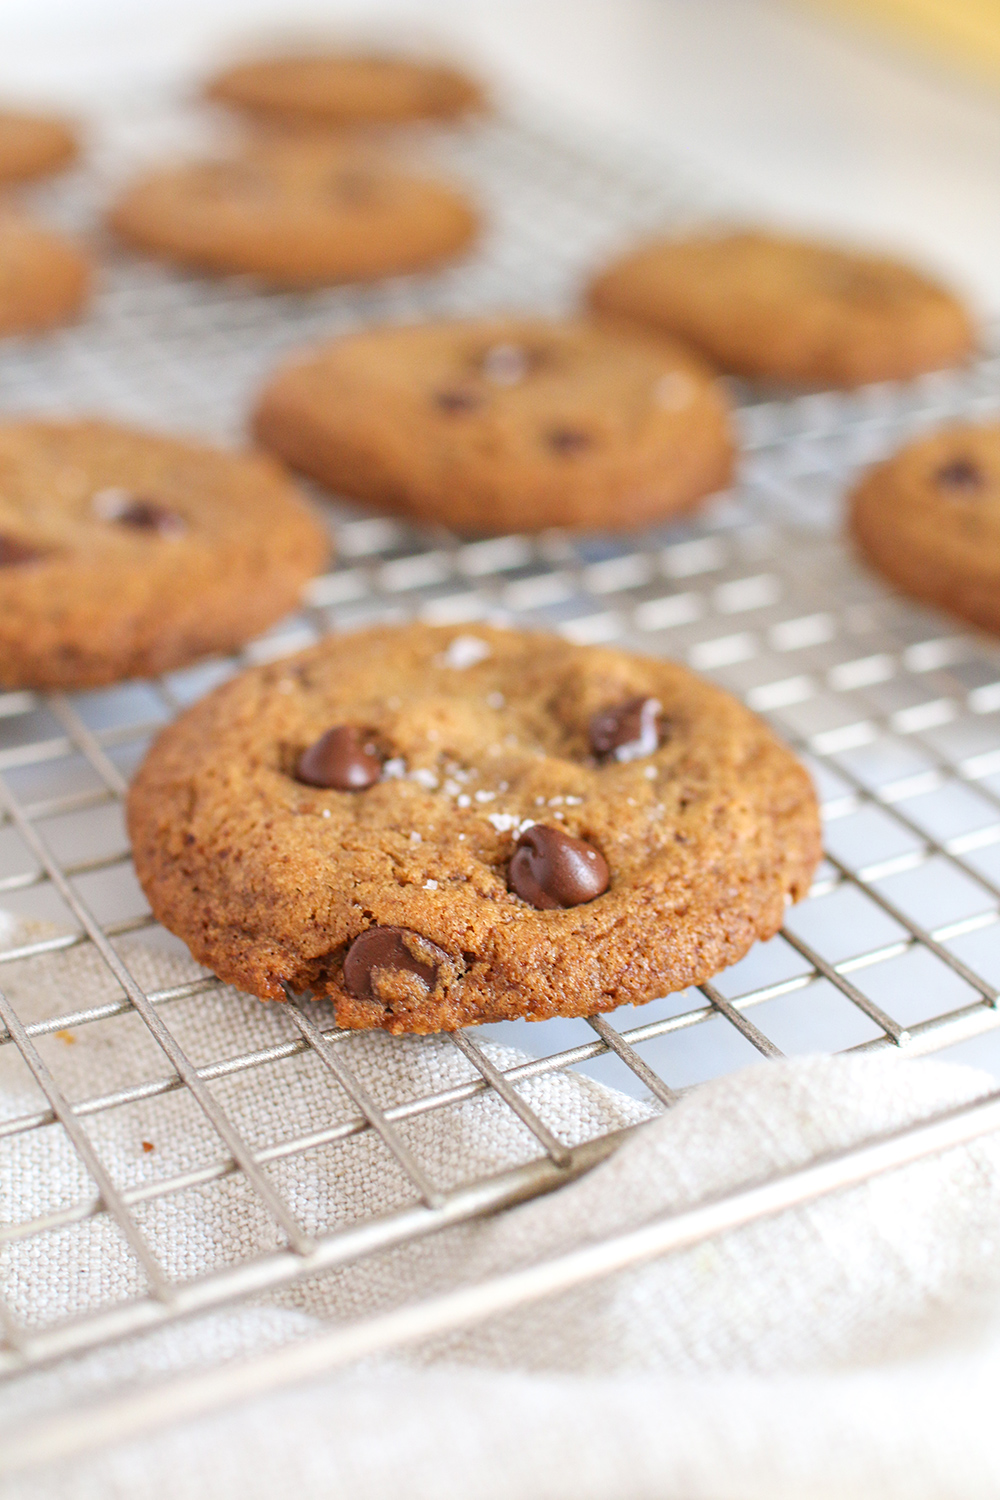 a close up of chocolate chip cookies on a wire cooling rack